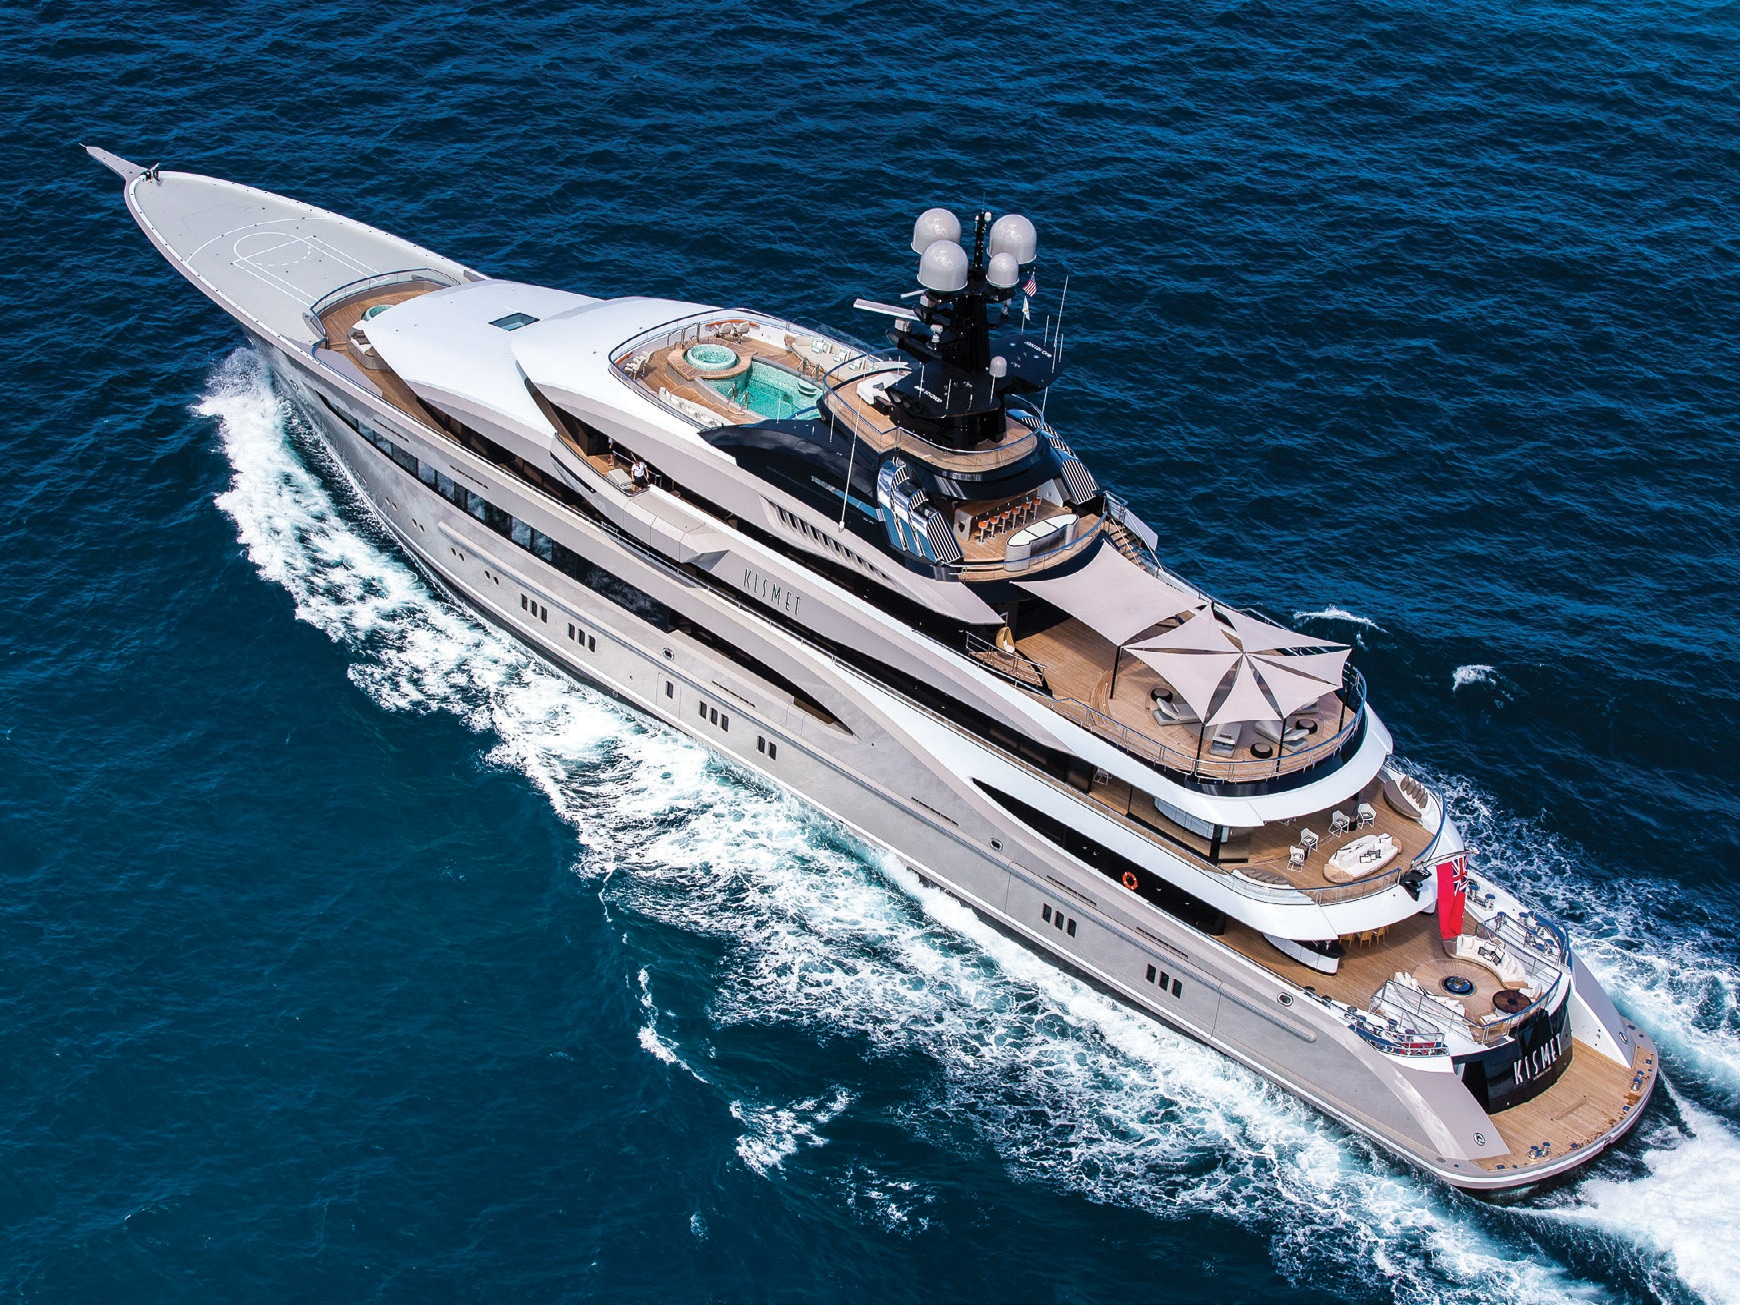 superyacht-0001.jpg